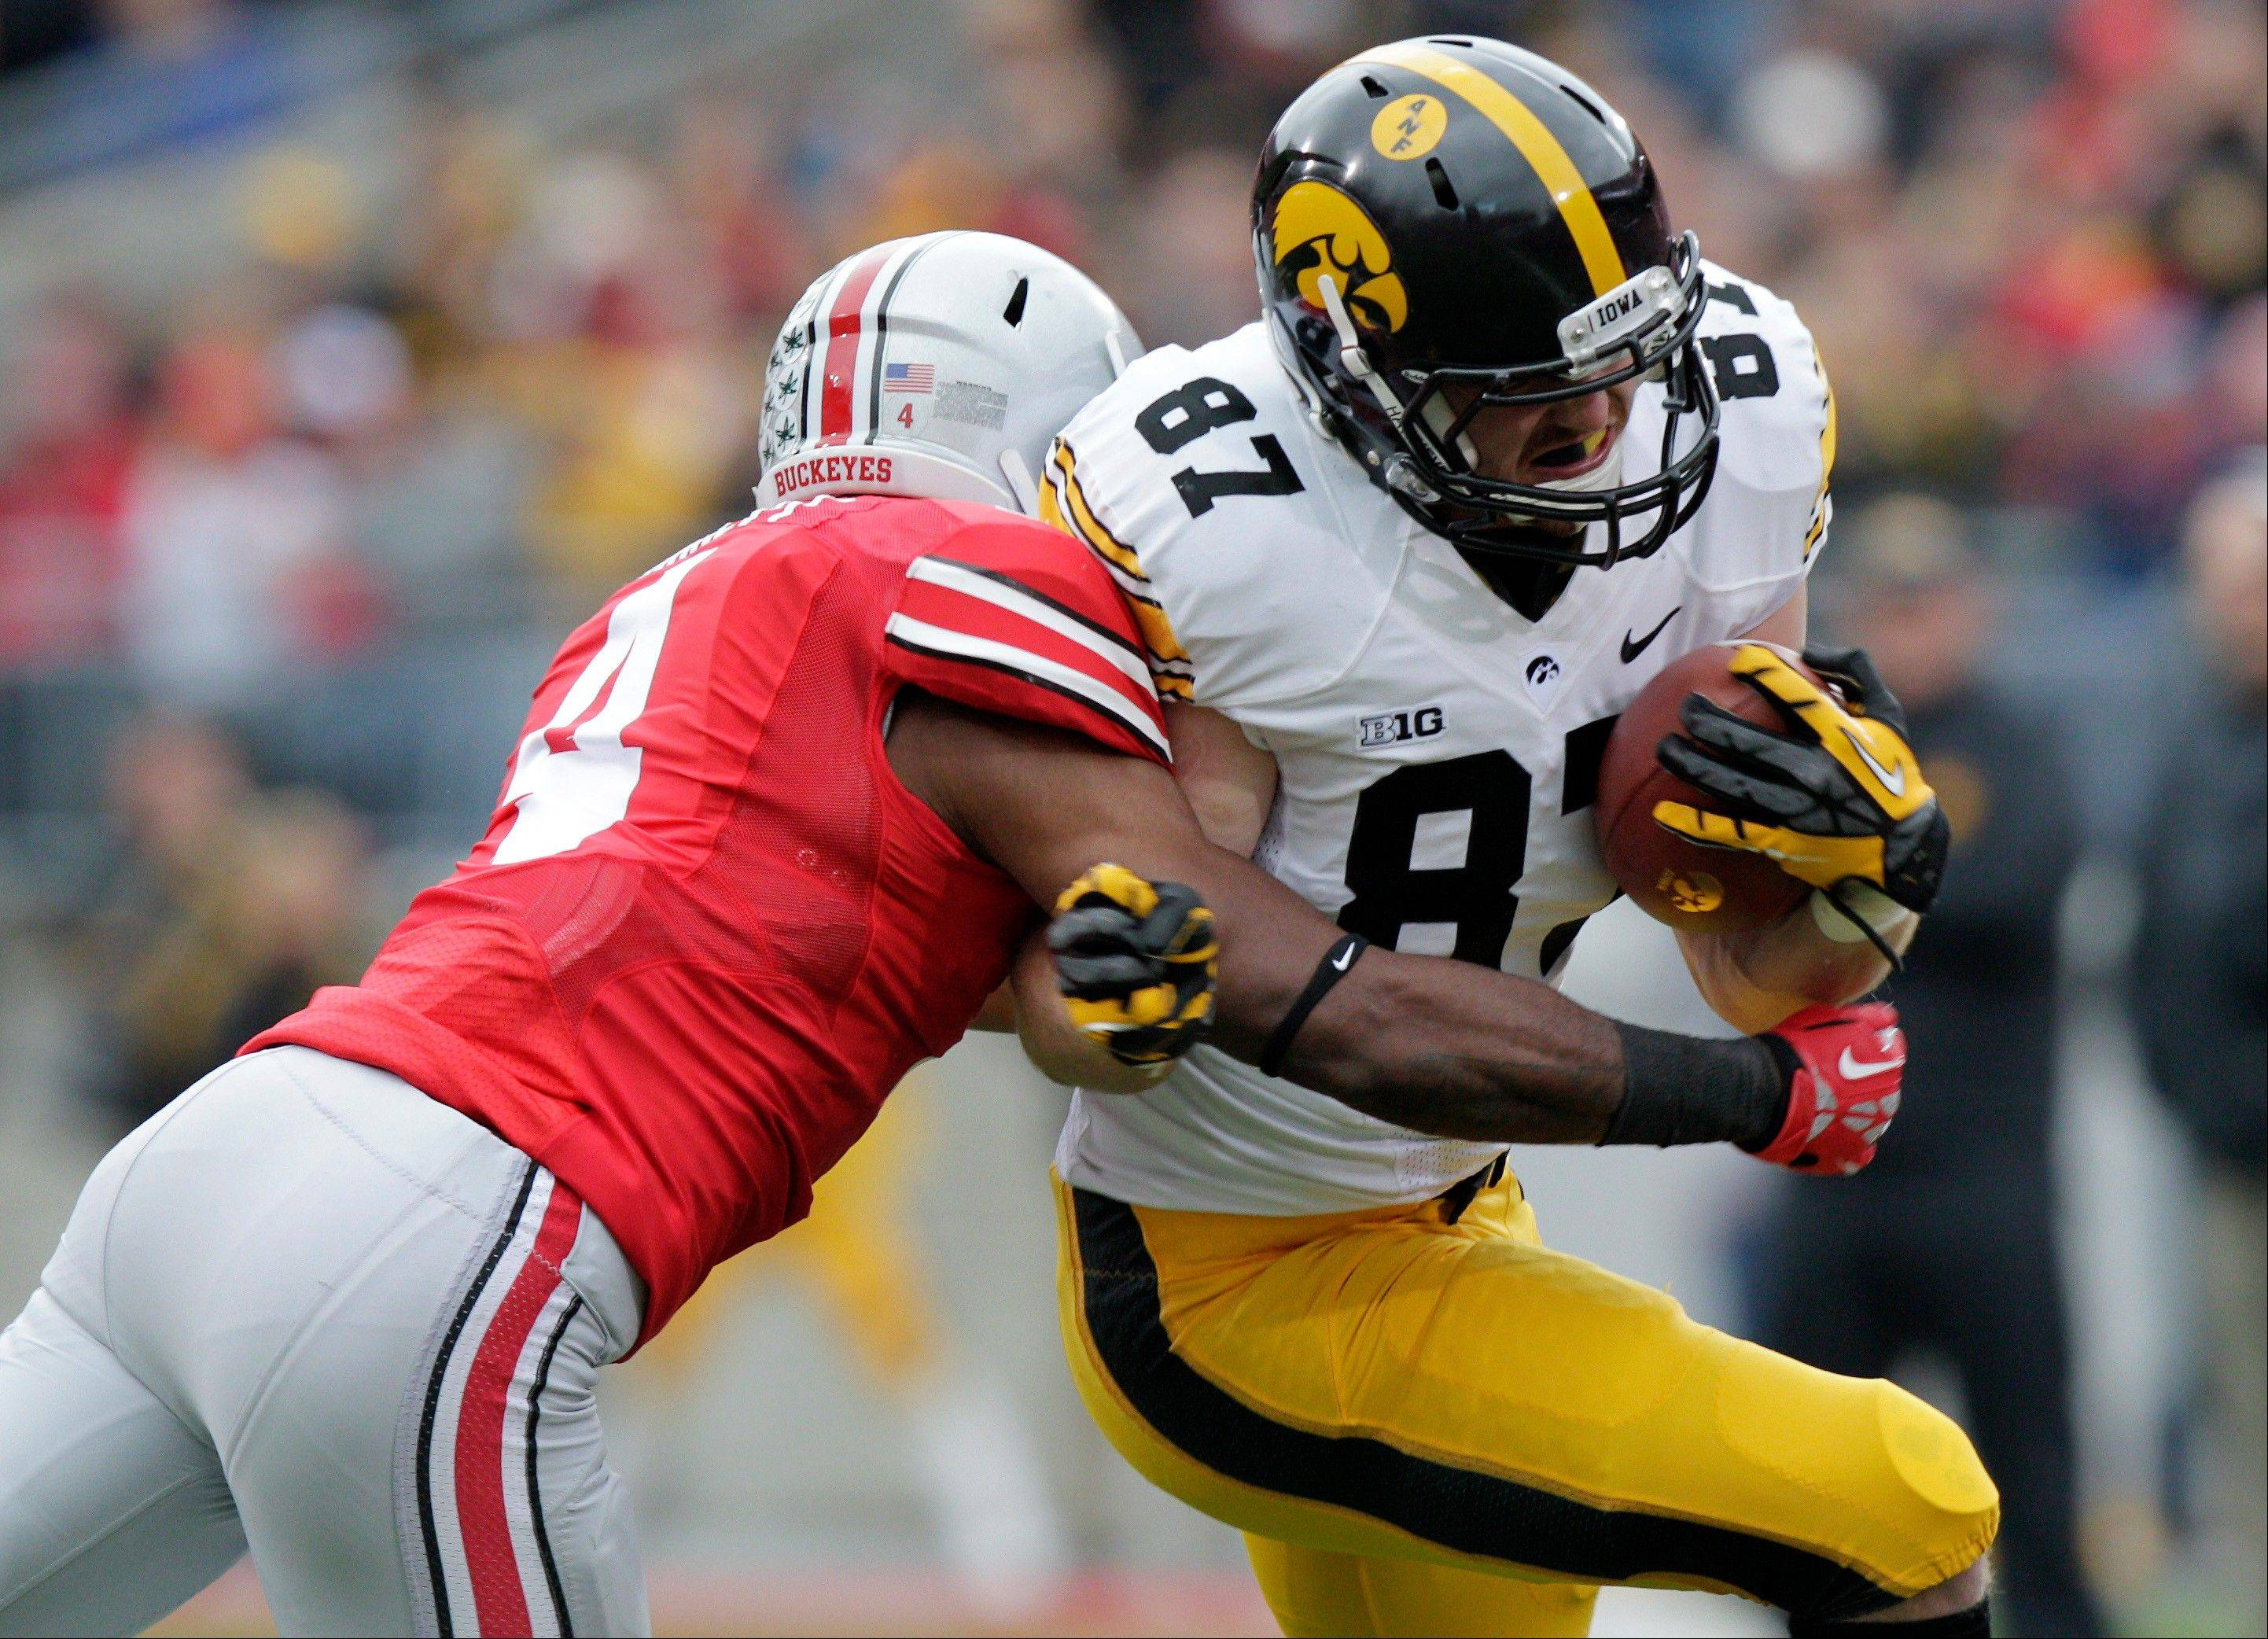 Iowa tight end Jake Duzey, right, tries to get past Ohio State defensive back C.J. Barnett during the first quarter of Saturday's game. Duzey finished with 138 yards, the most for an Iowa tight end in the last 15 seasons.